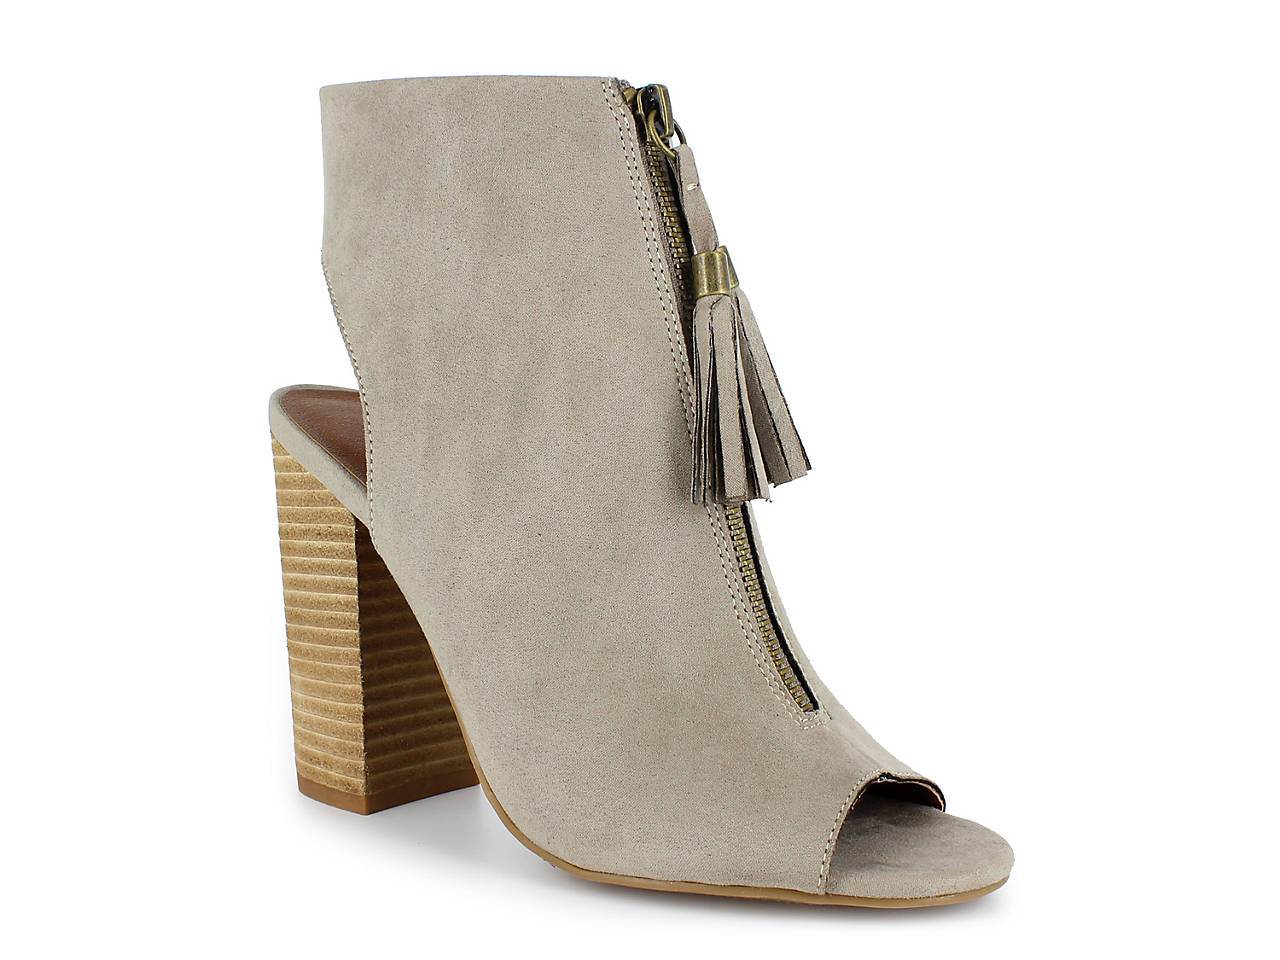 DOLCE by mojo moxy Magnolia Bootie